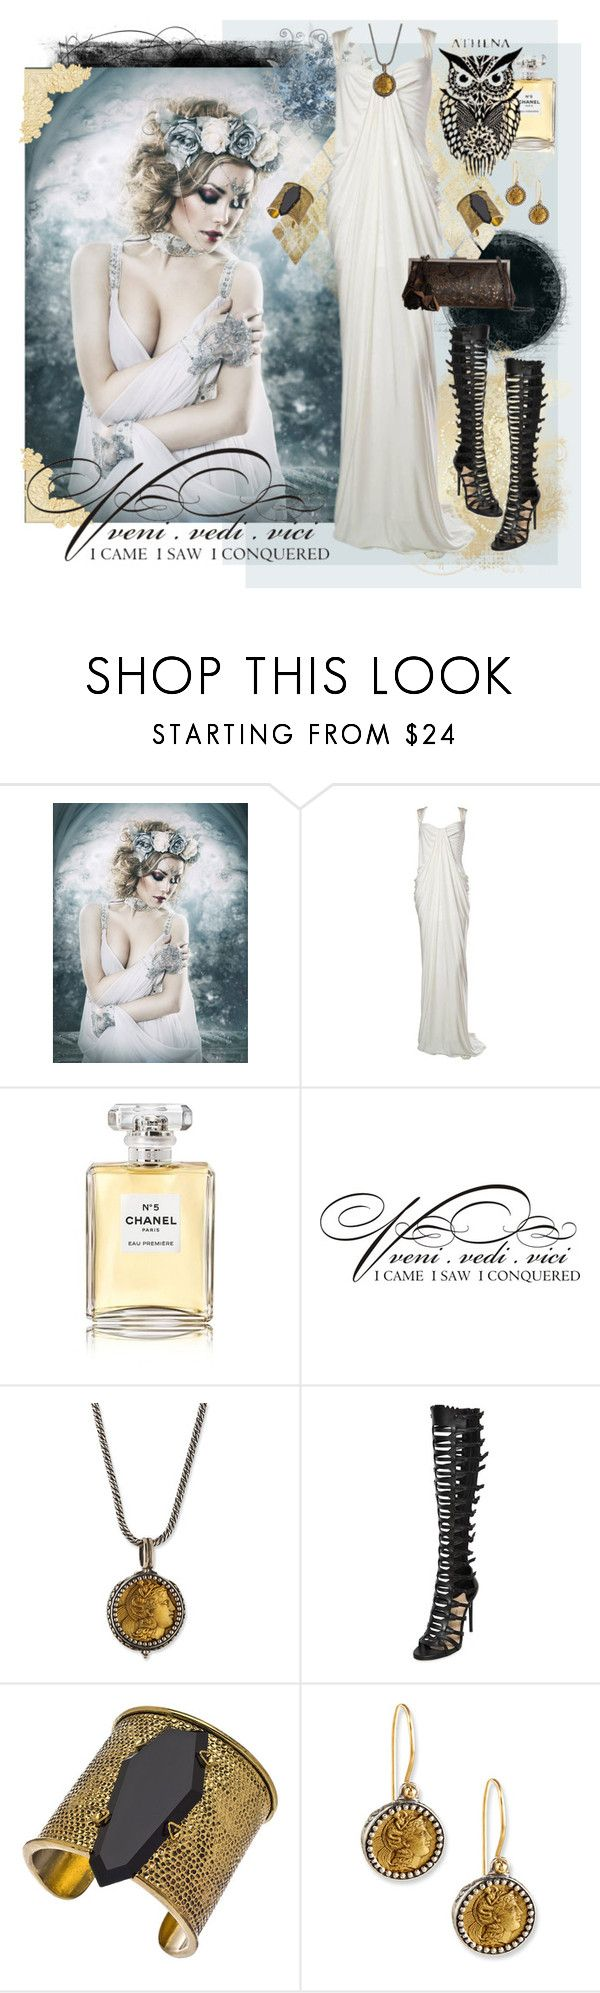 """Veni, vidi, vici"" by julyralewis ❤ liked on Polyvore featuring Donna Karan, Chanel, WALL, Konstantino, Paul Andrew, Gottex and Patricia Nash"